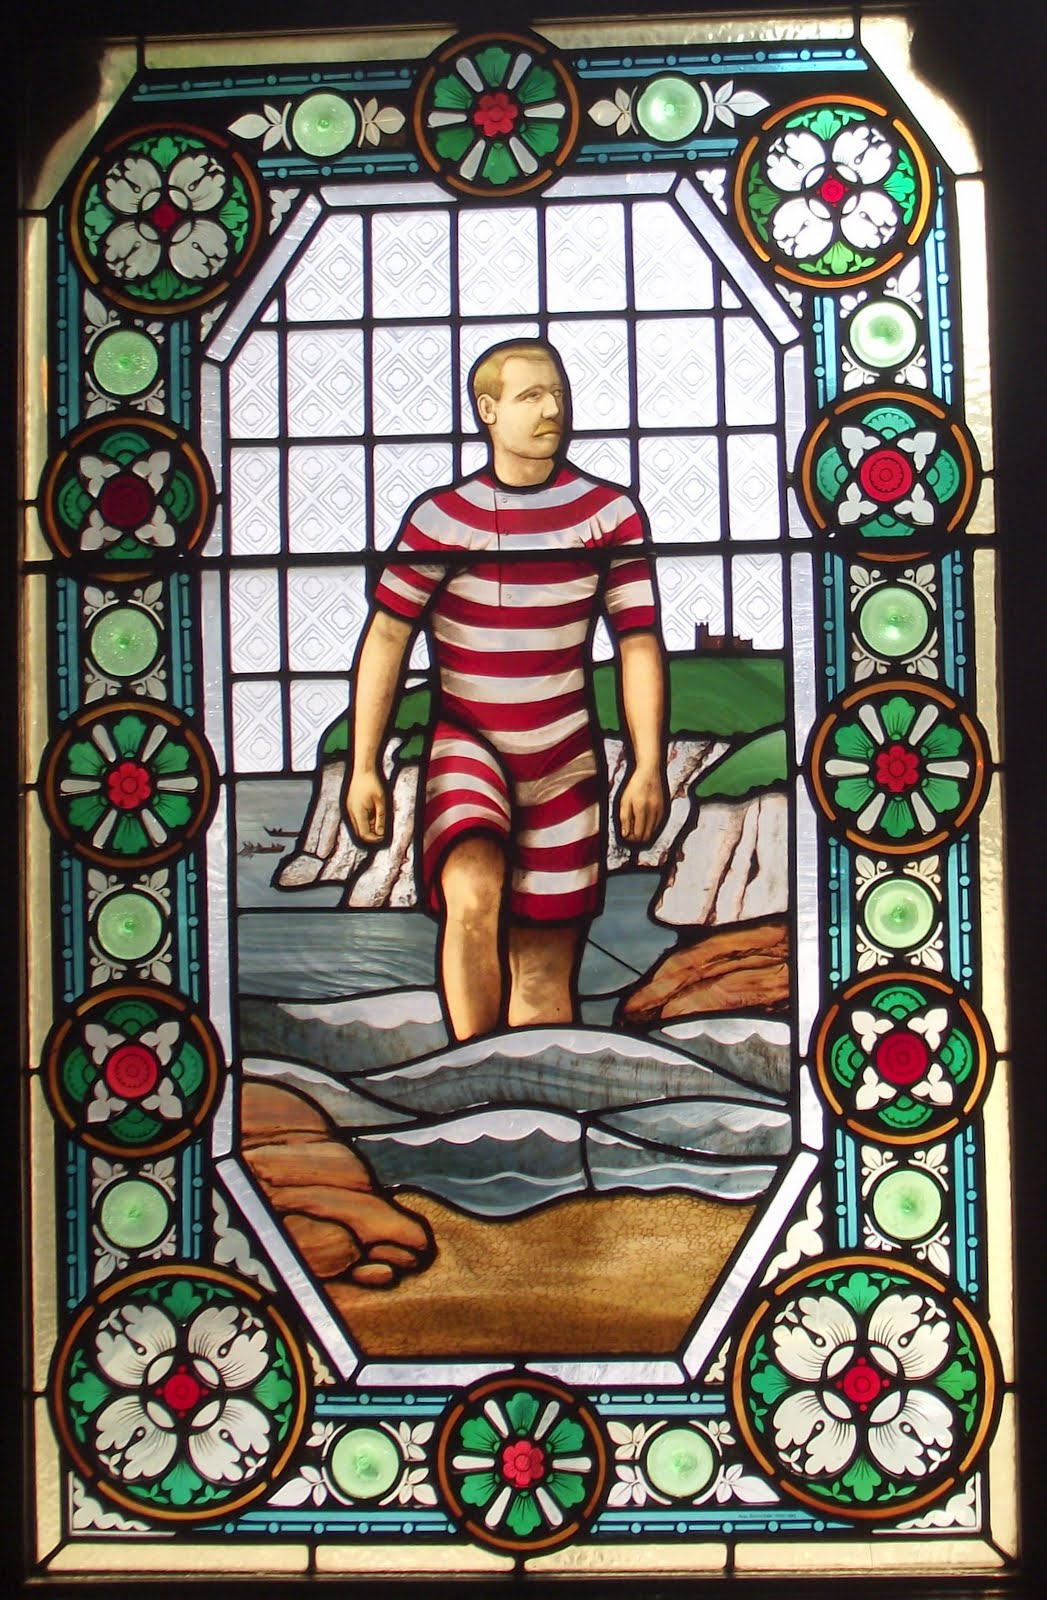 Matthew Webb was the first to swim the English Channel (30 miles in 21 hours) he died swimming across Niagara Falls